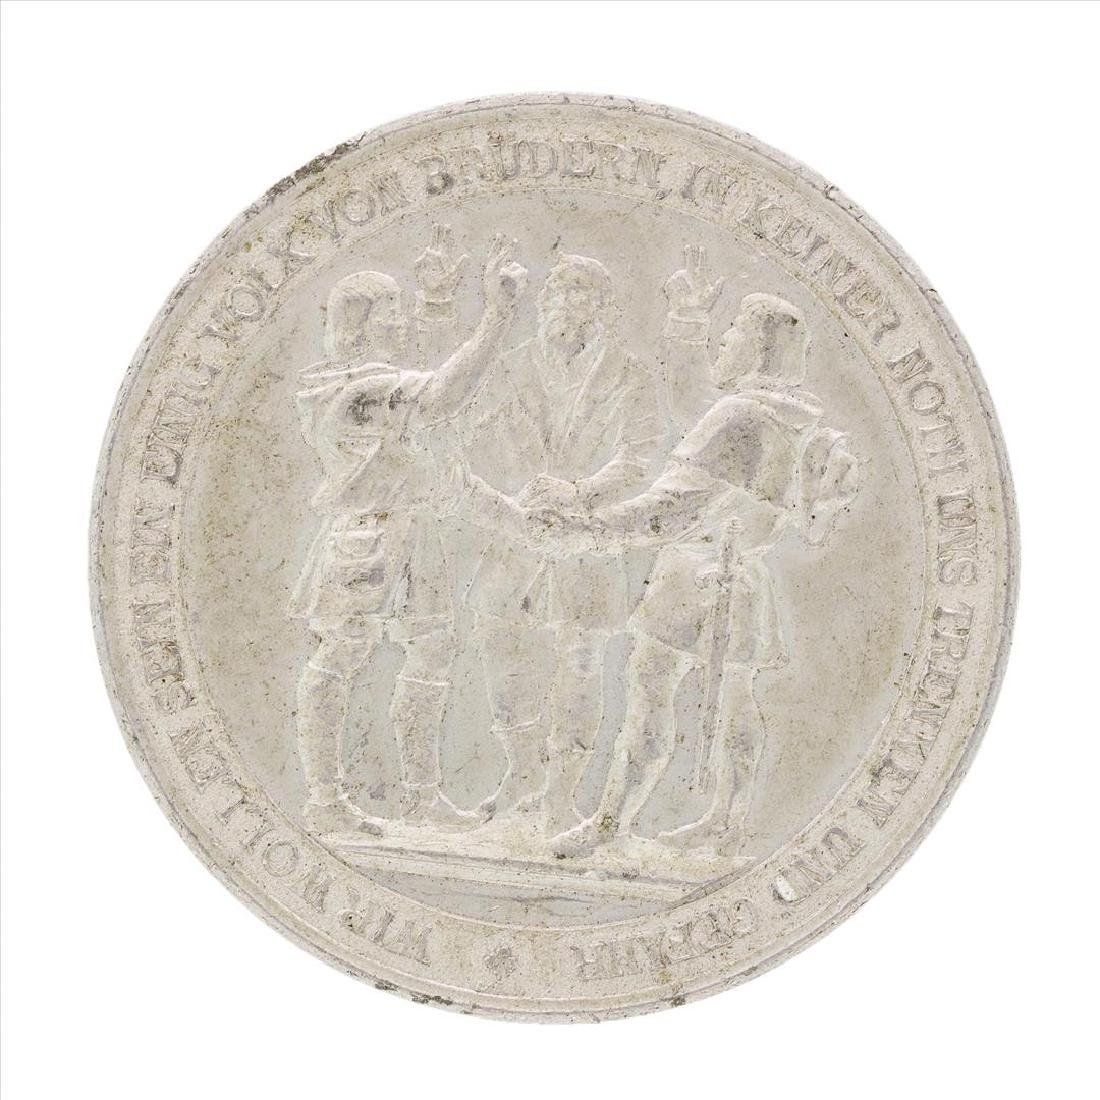 1891 Switzerland Medal